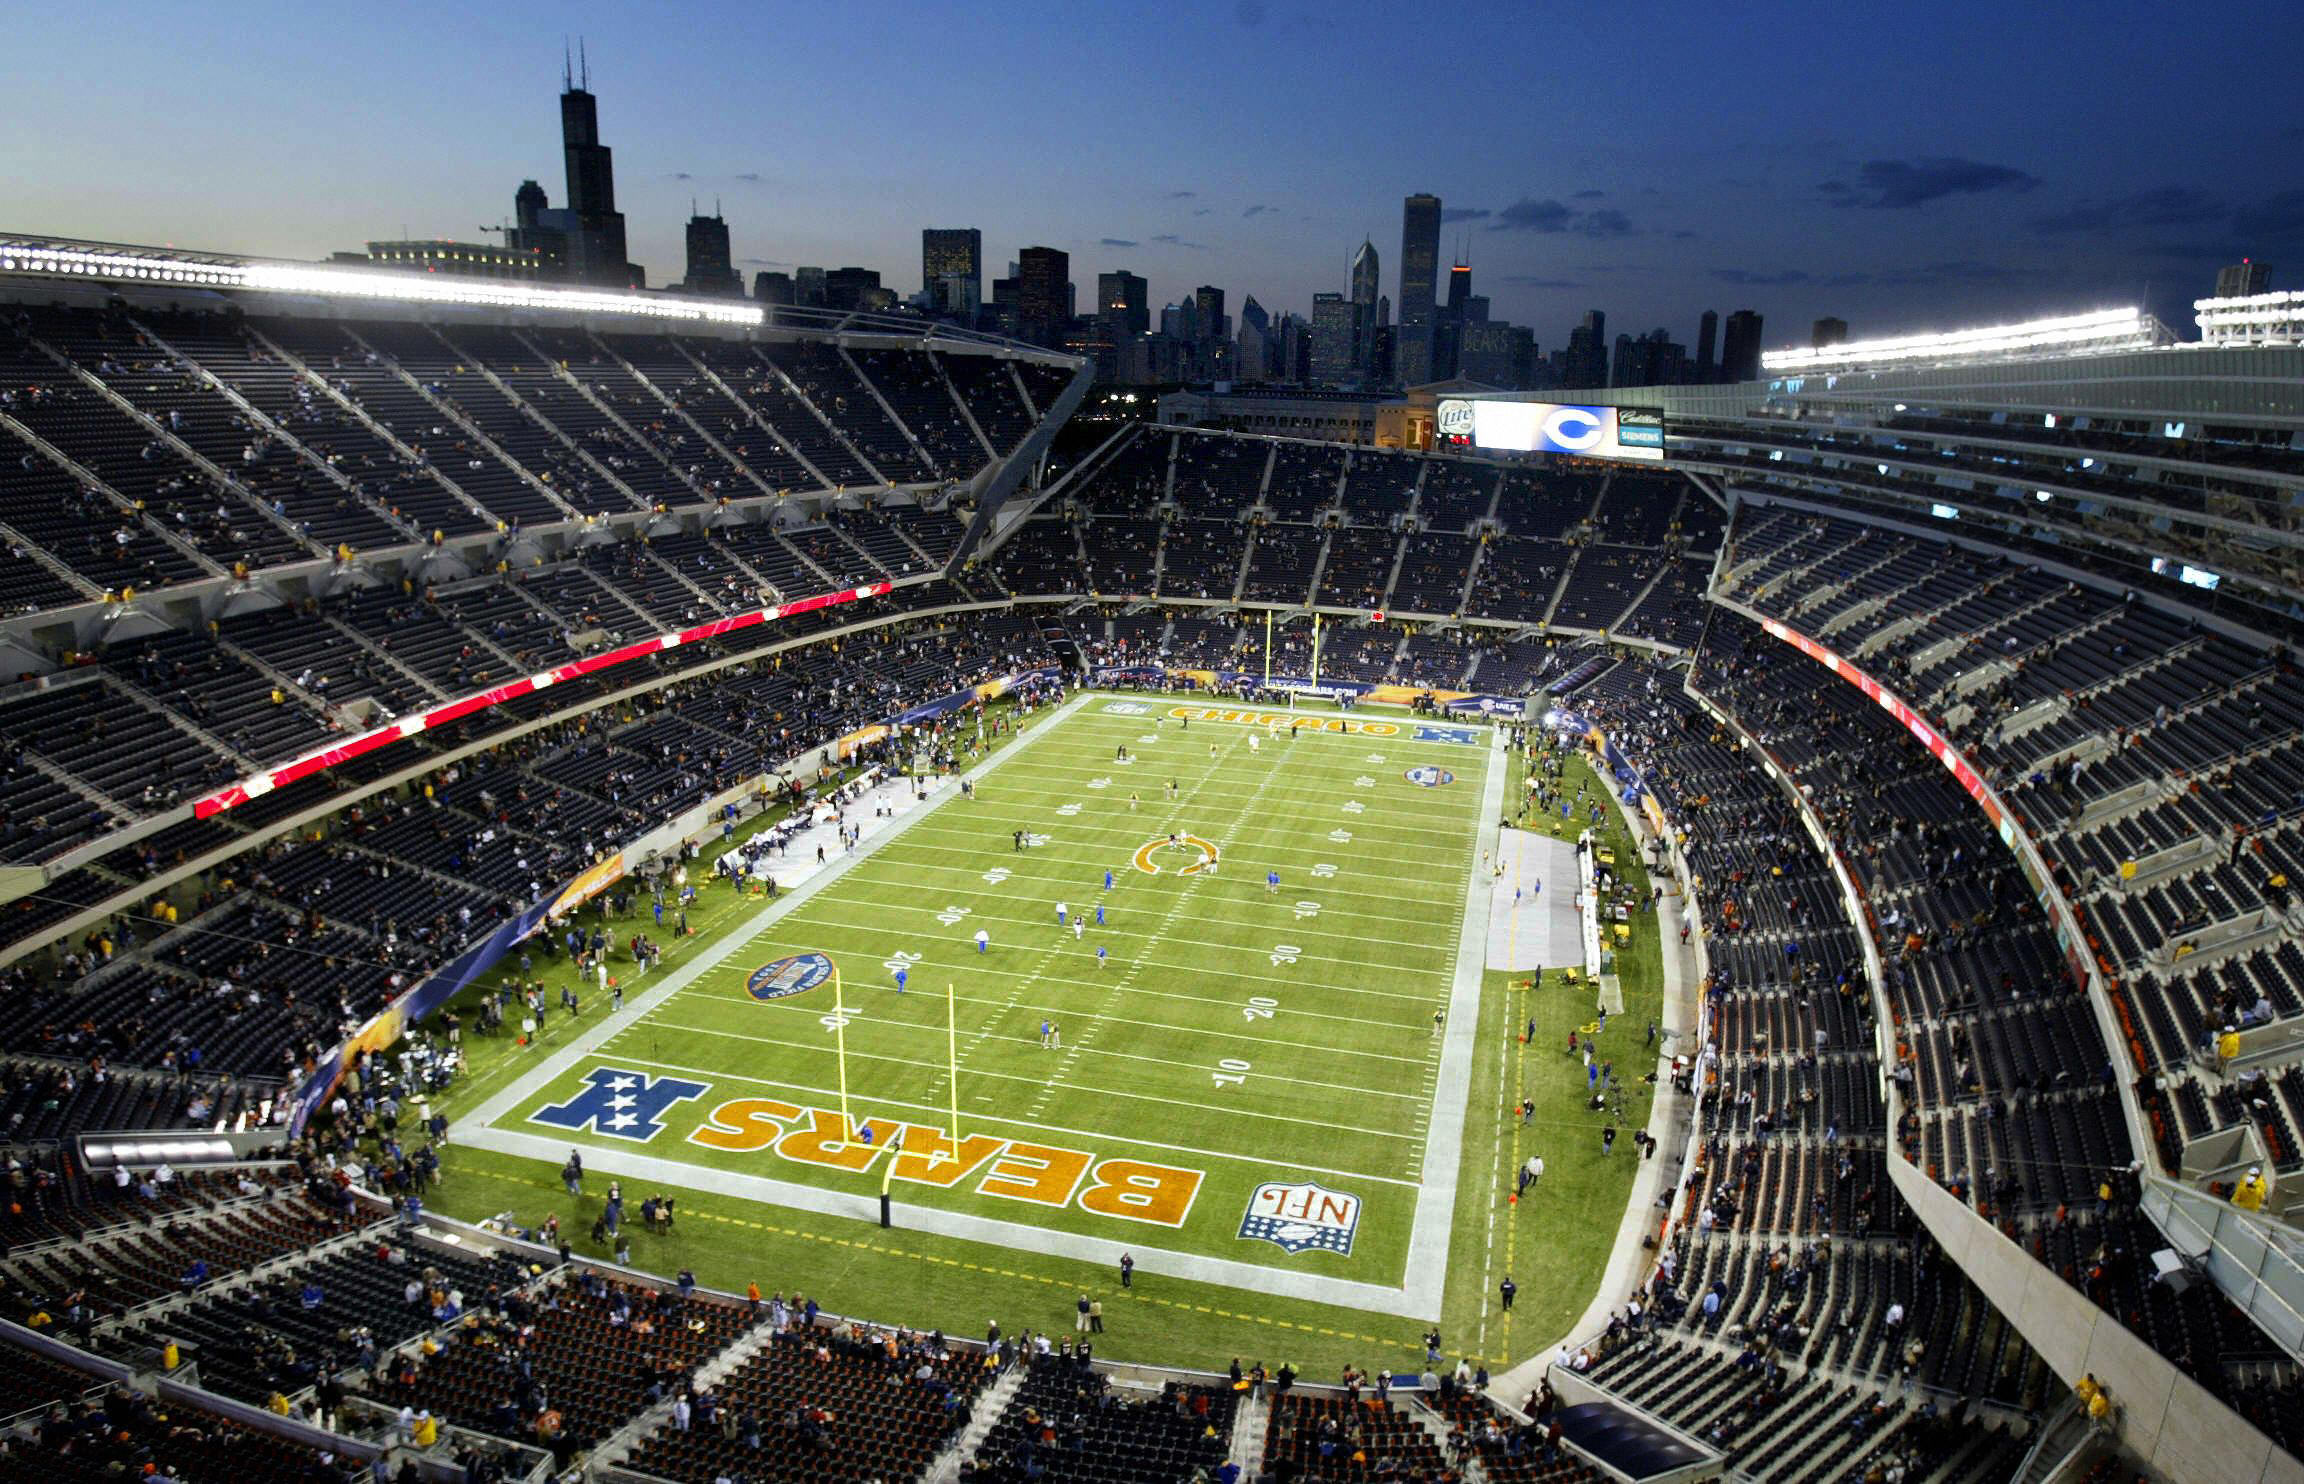 An aerial view of the Chicago Bears football stadium